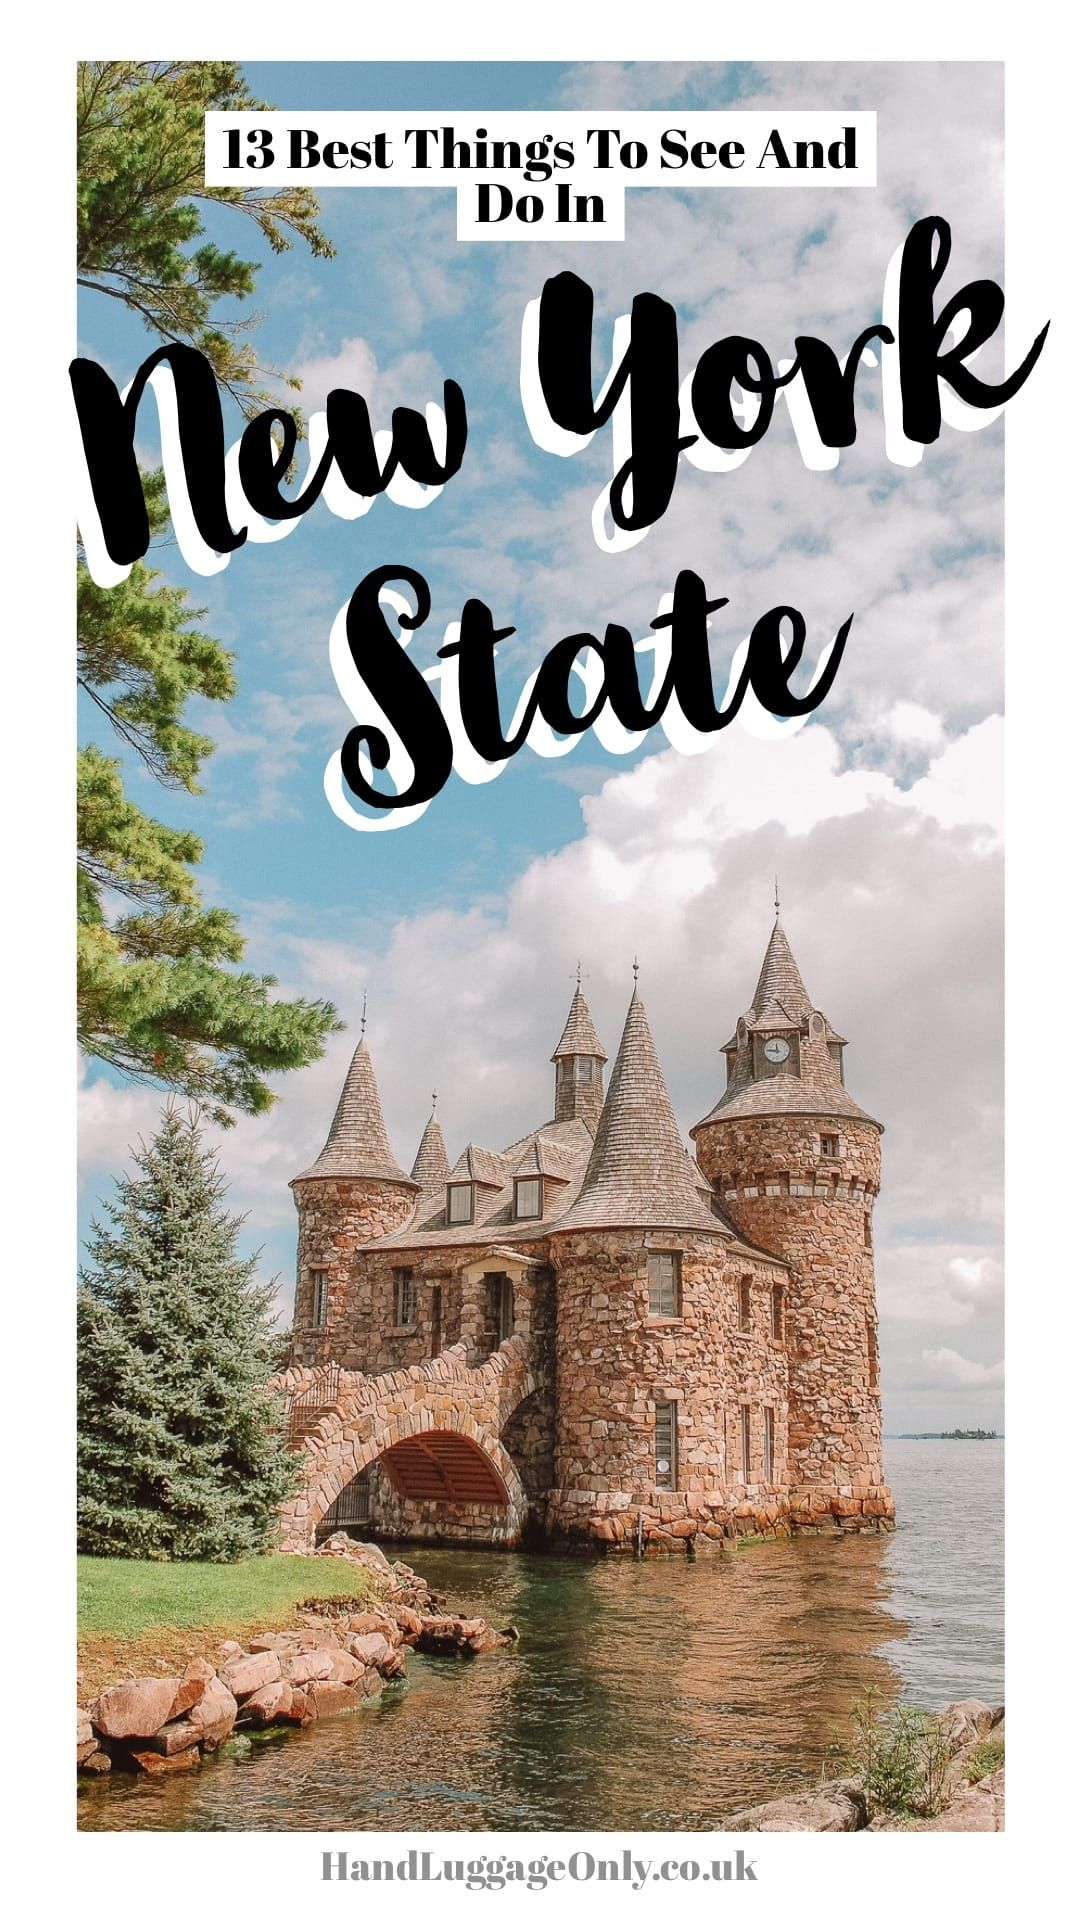 13 Best Things To Do In New York State